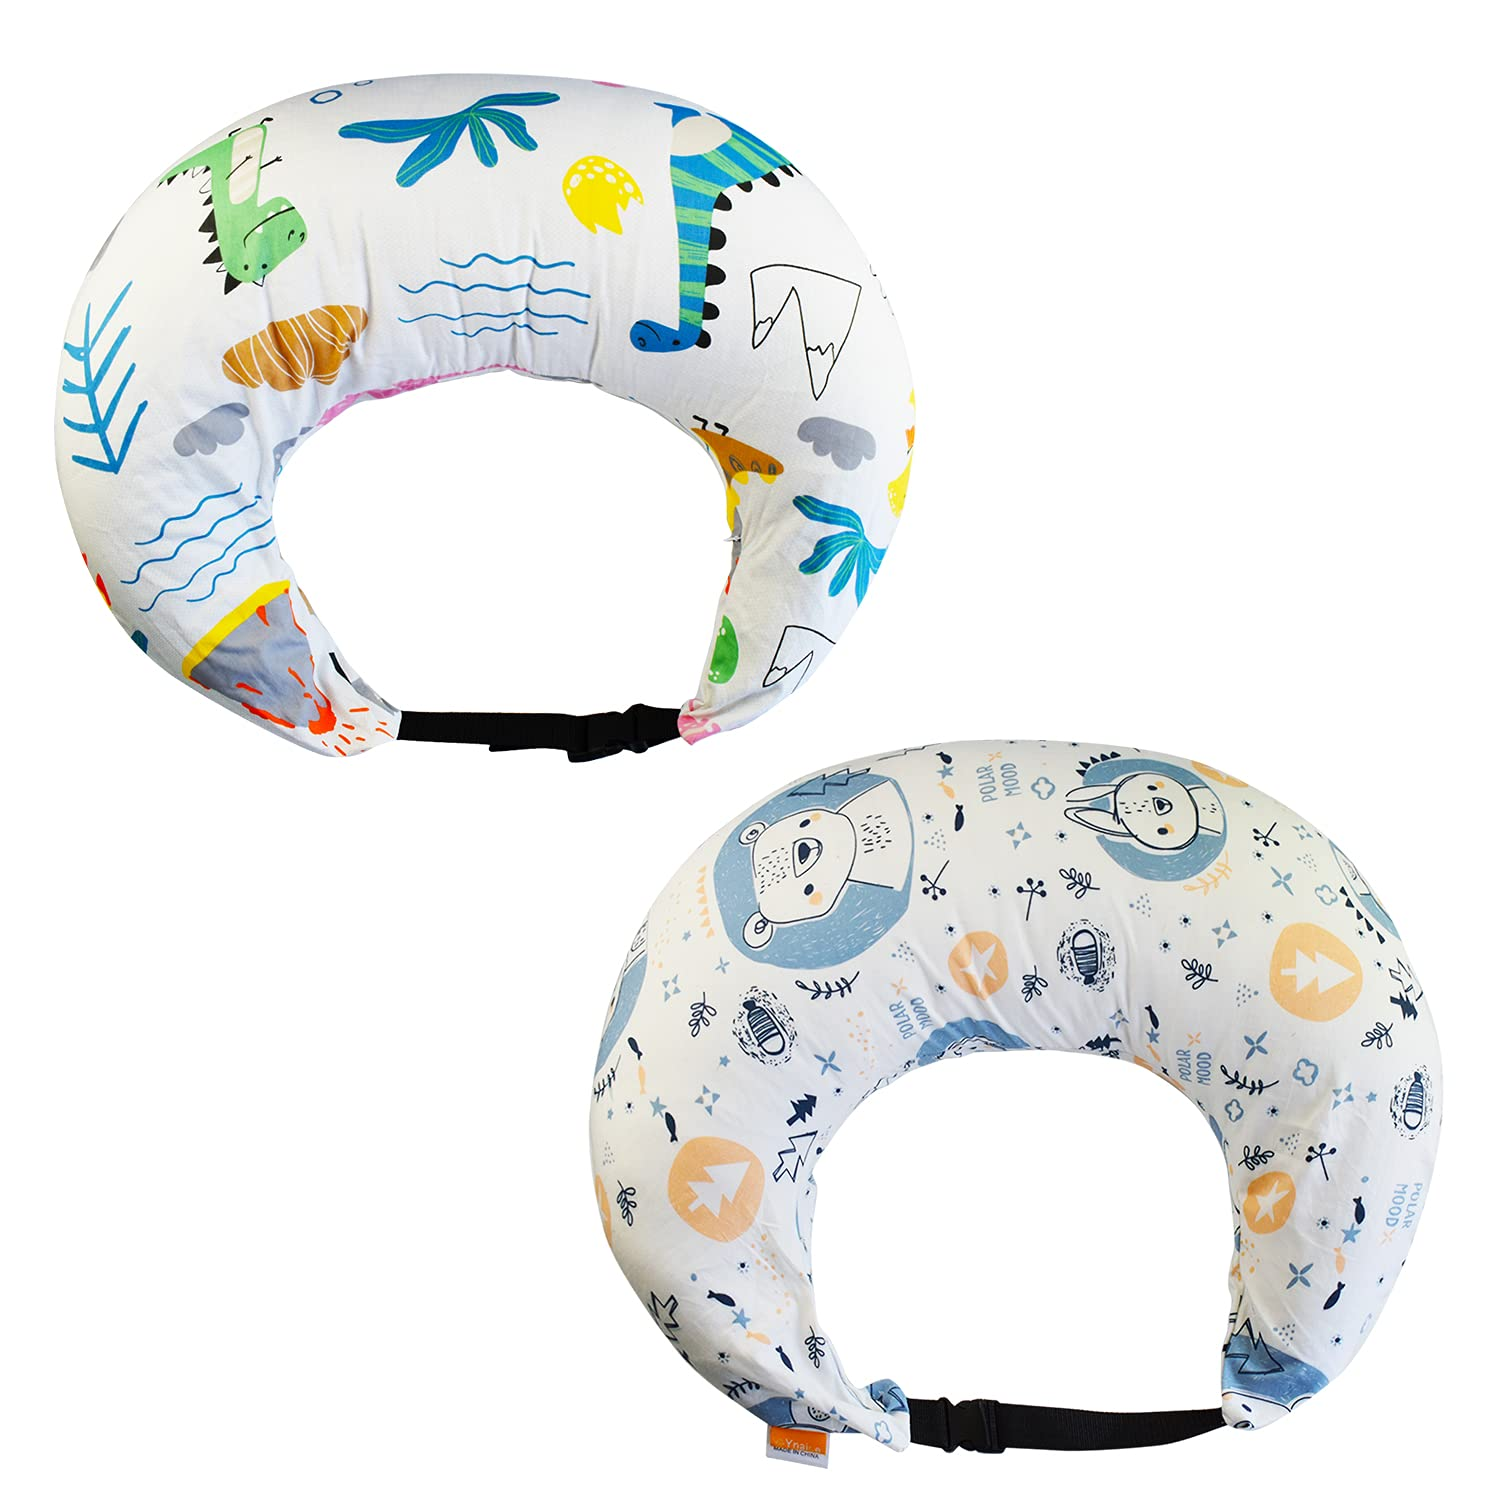 Ynaize Nursing Pillow Cover, 2 PCS Breastfeeding Pillow Slipcover for Baby Boys Girls with Adjustable Buckle, Ultra-Soft and Breathable Cotton Nursing Pillow Case for Newborn Infant (Dinosaur & Bear)